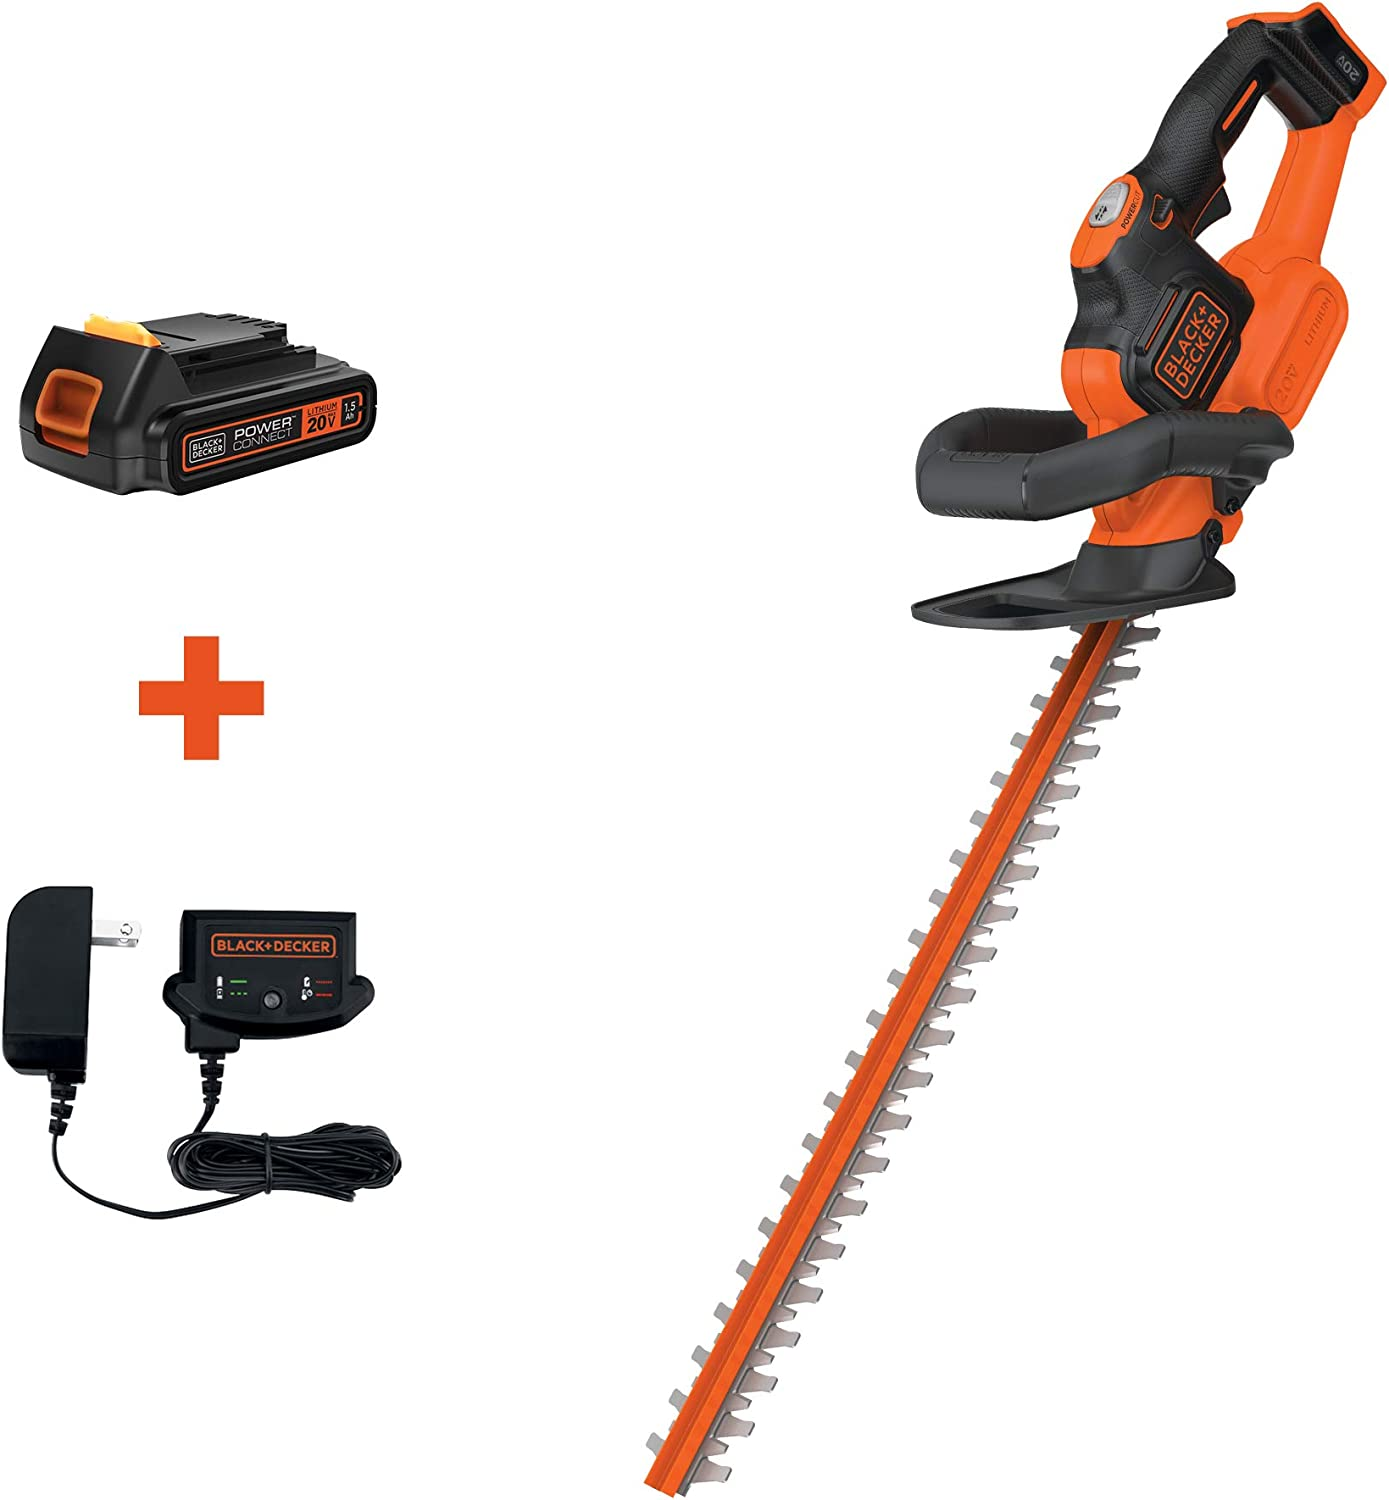 BLACK DECKER 20V MAX Cordless Hedge Trimmer with POWERCOMMAND Powercut, 22-Inch LHT321FF